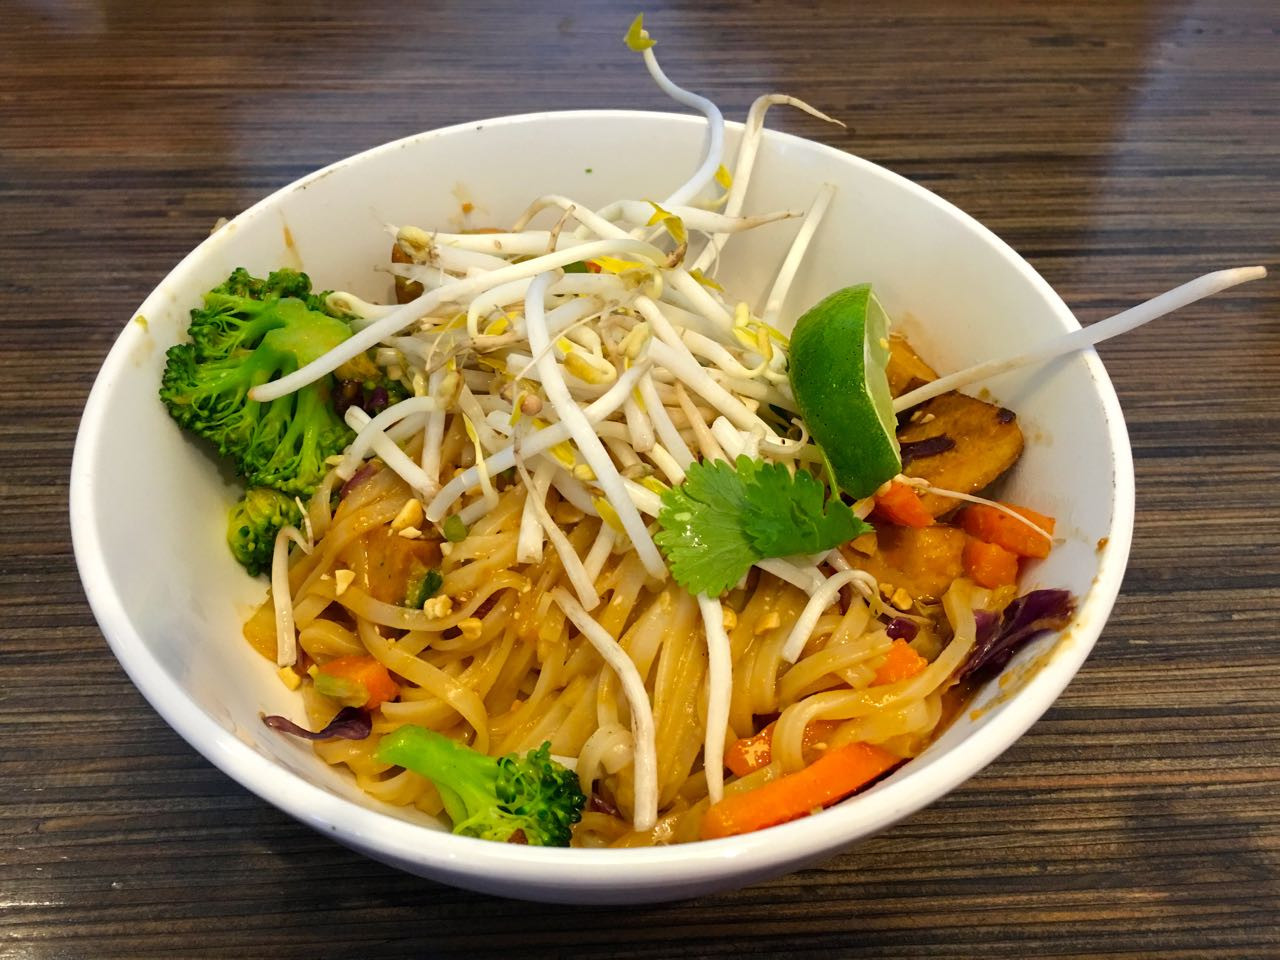 Noodles And Company Idaho Falls  The Veracious Vegan Noodles & pany Twin Falls Idaho